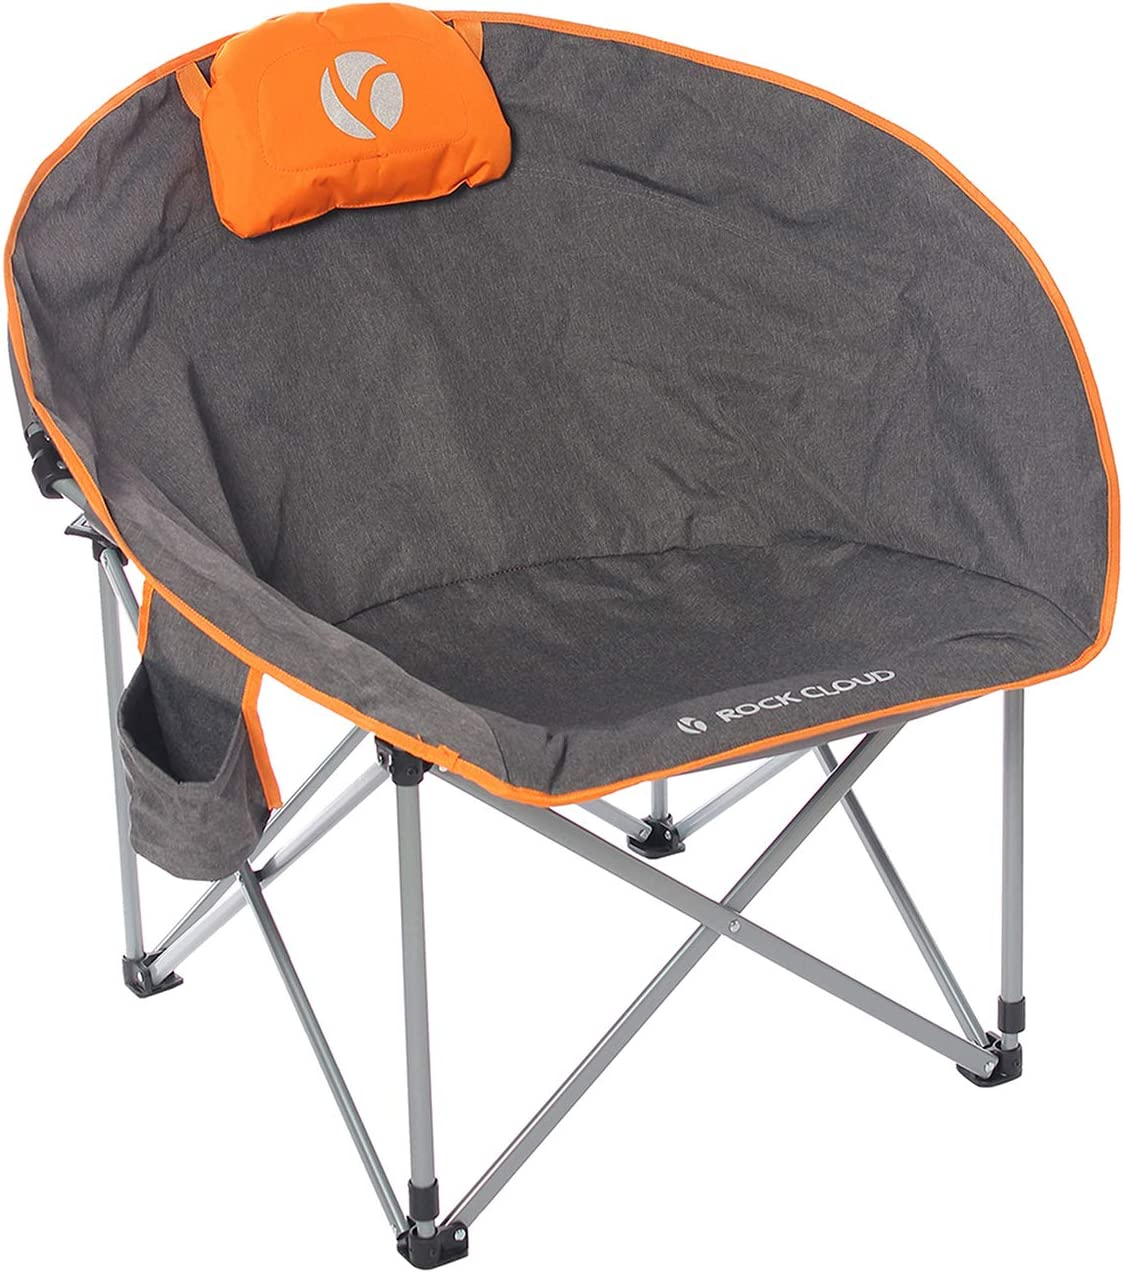 Rock Cloud Folding Camping Chair Oversized Padded Moon Round Saucer Chairs Outdoor for Camp Lawn Hiking Fishing Sports, Grey